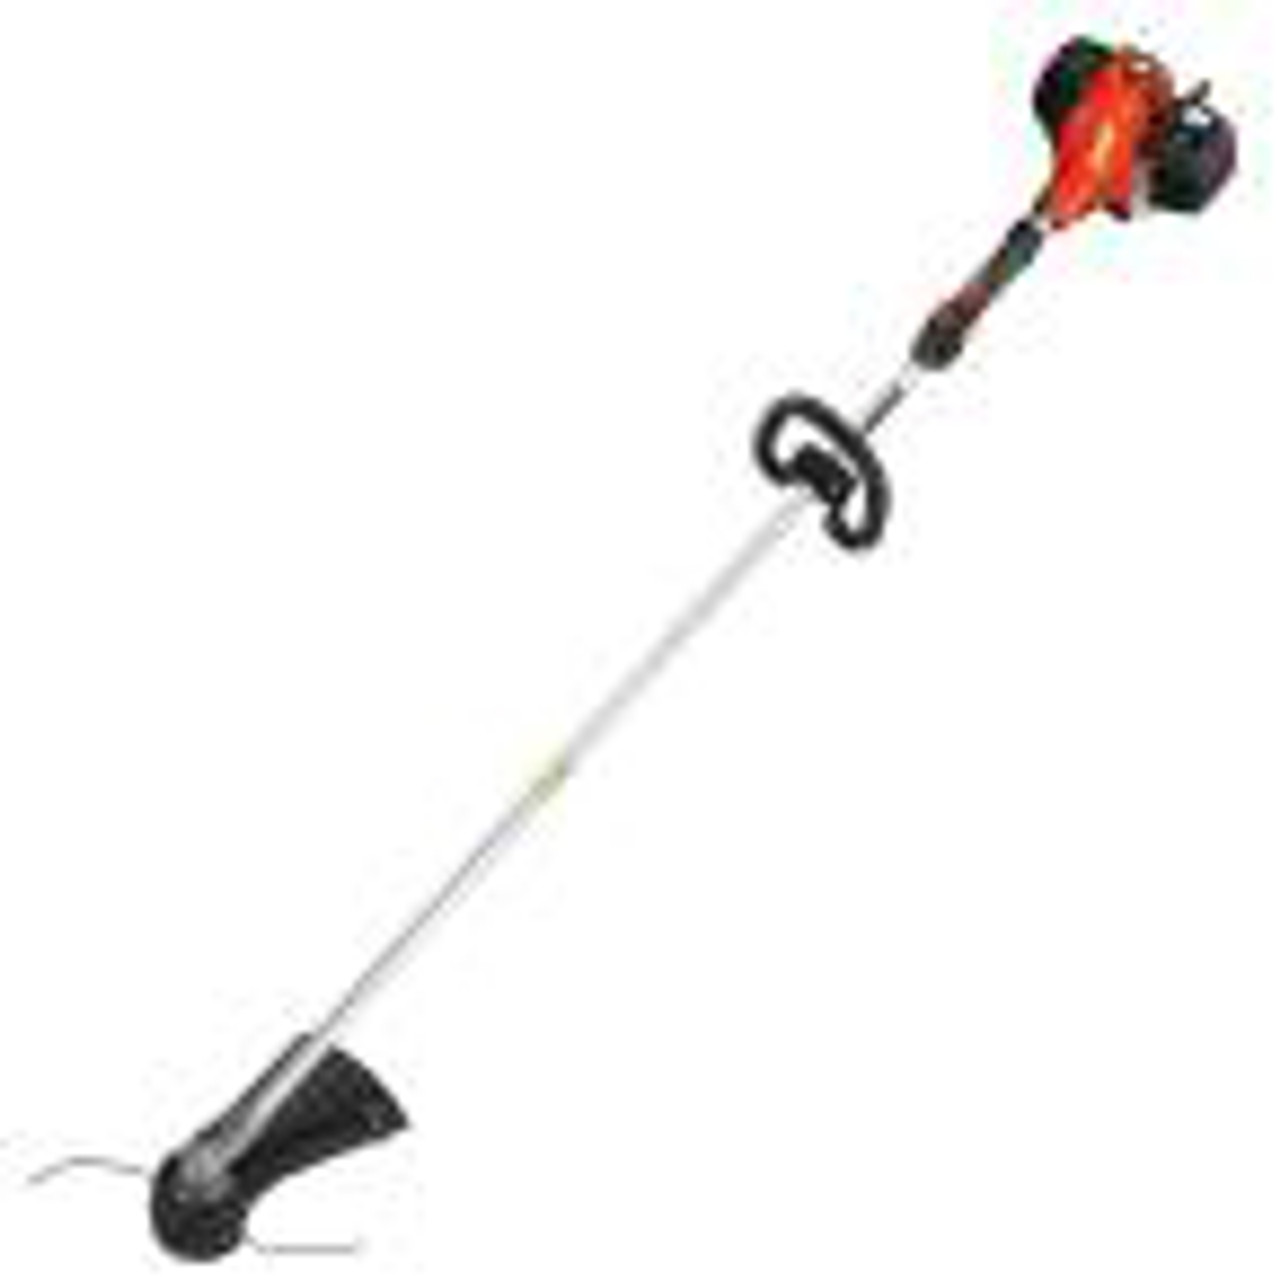 ECHO SRM-2620T X-Series 25.4cc 2-Stroke Pro Torque Commercial Straight Shaft String Trimmer Image